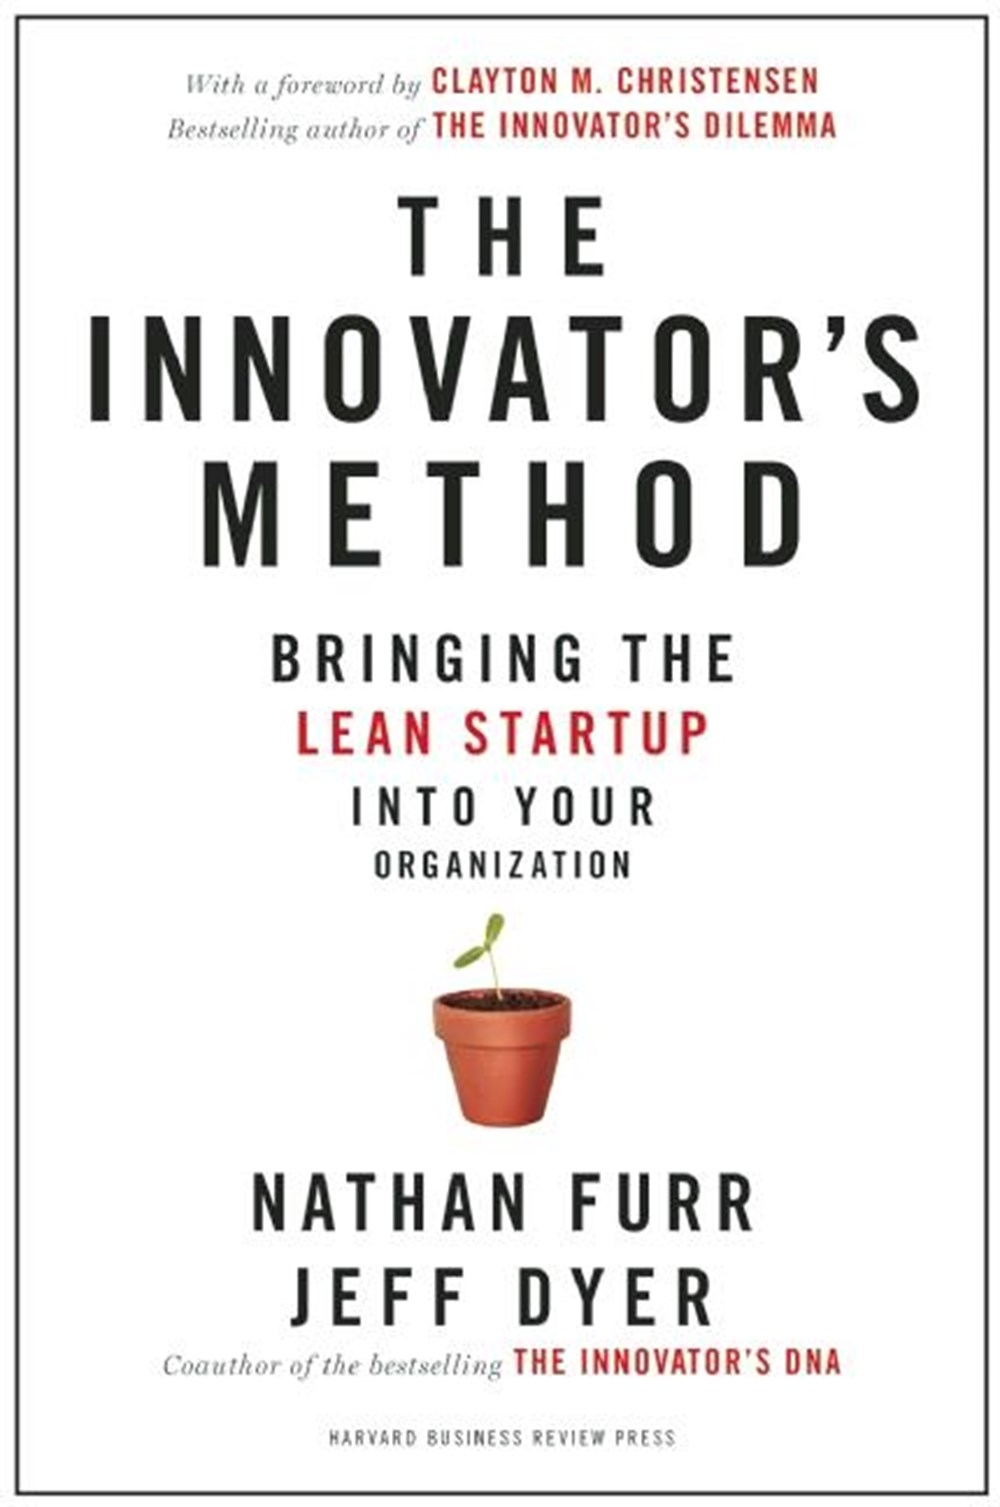 Innovator's Method Bringing the Lean Start-Up Into Your Organization